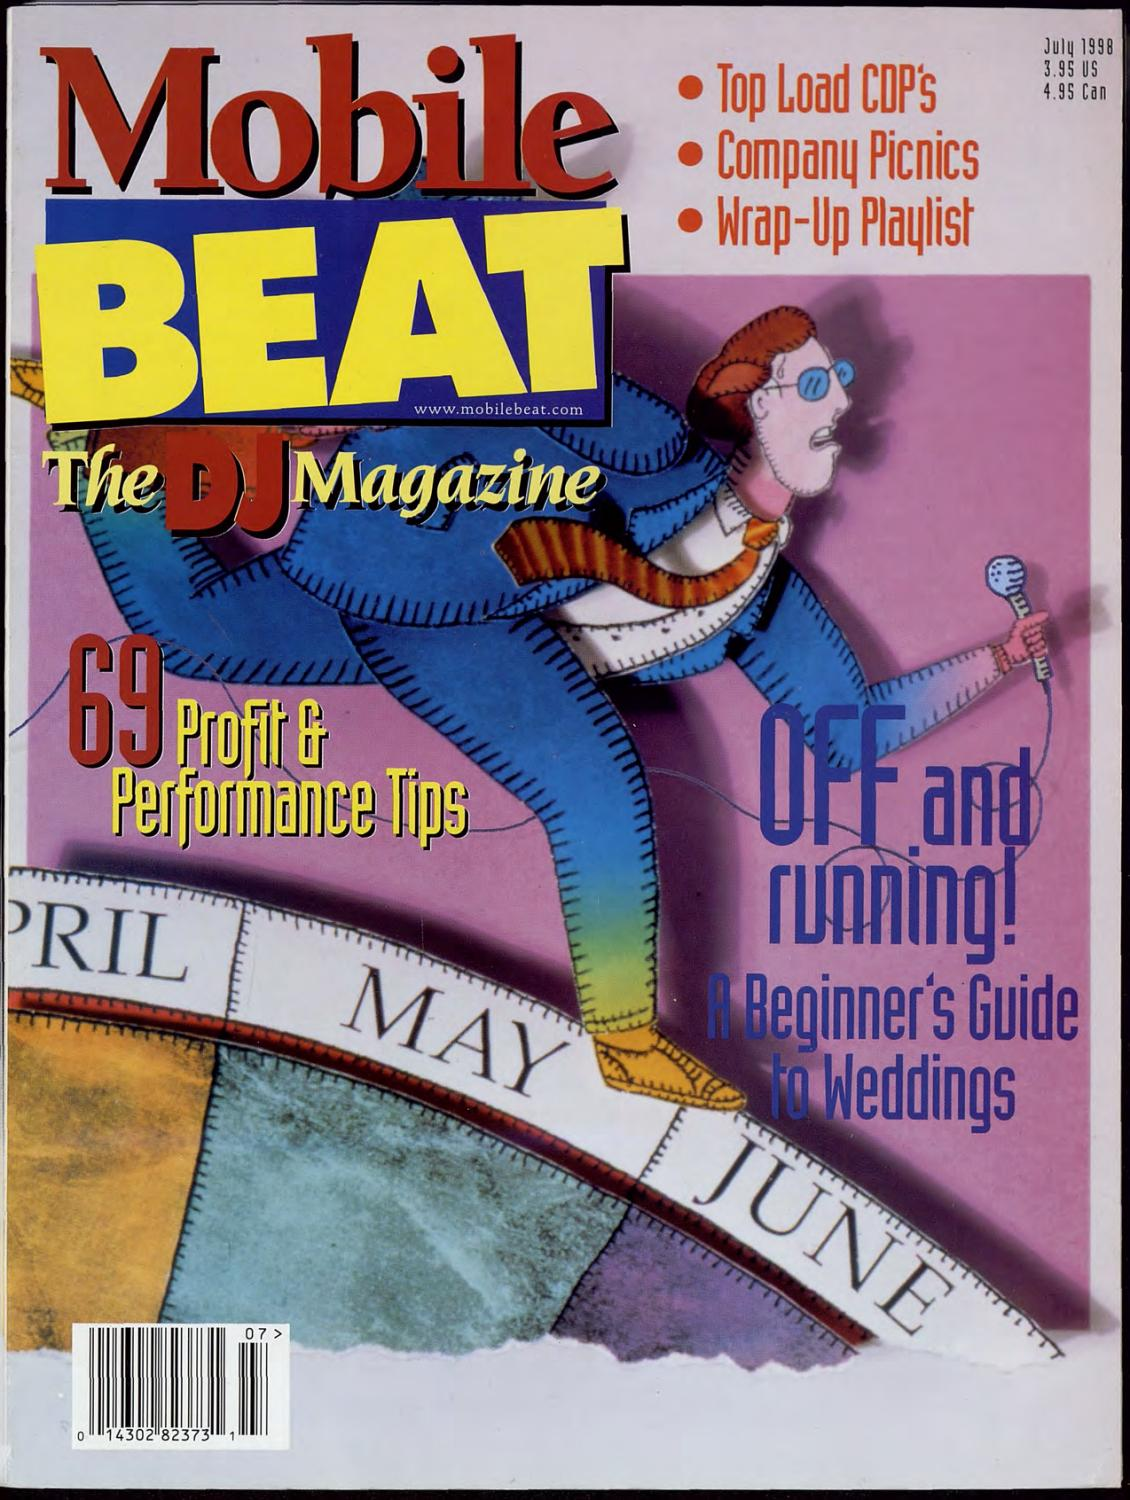 Issue 046 - July 1998 - 69 Profit & Performance Tips by ... on